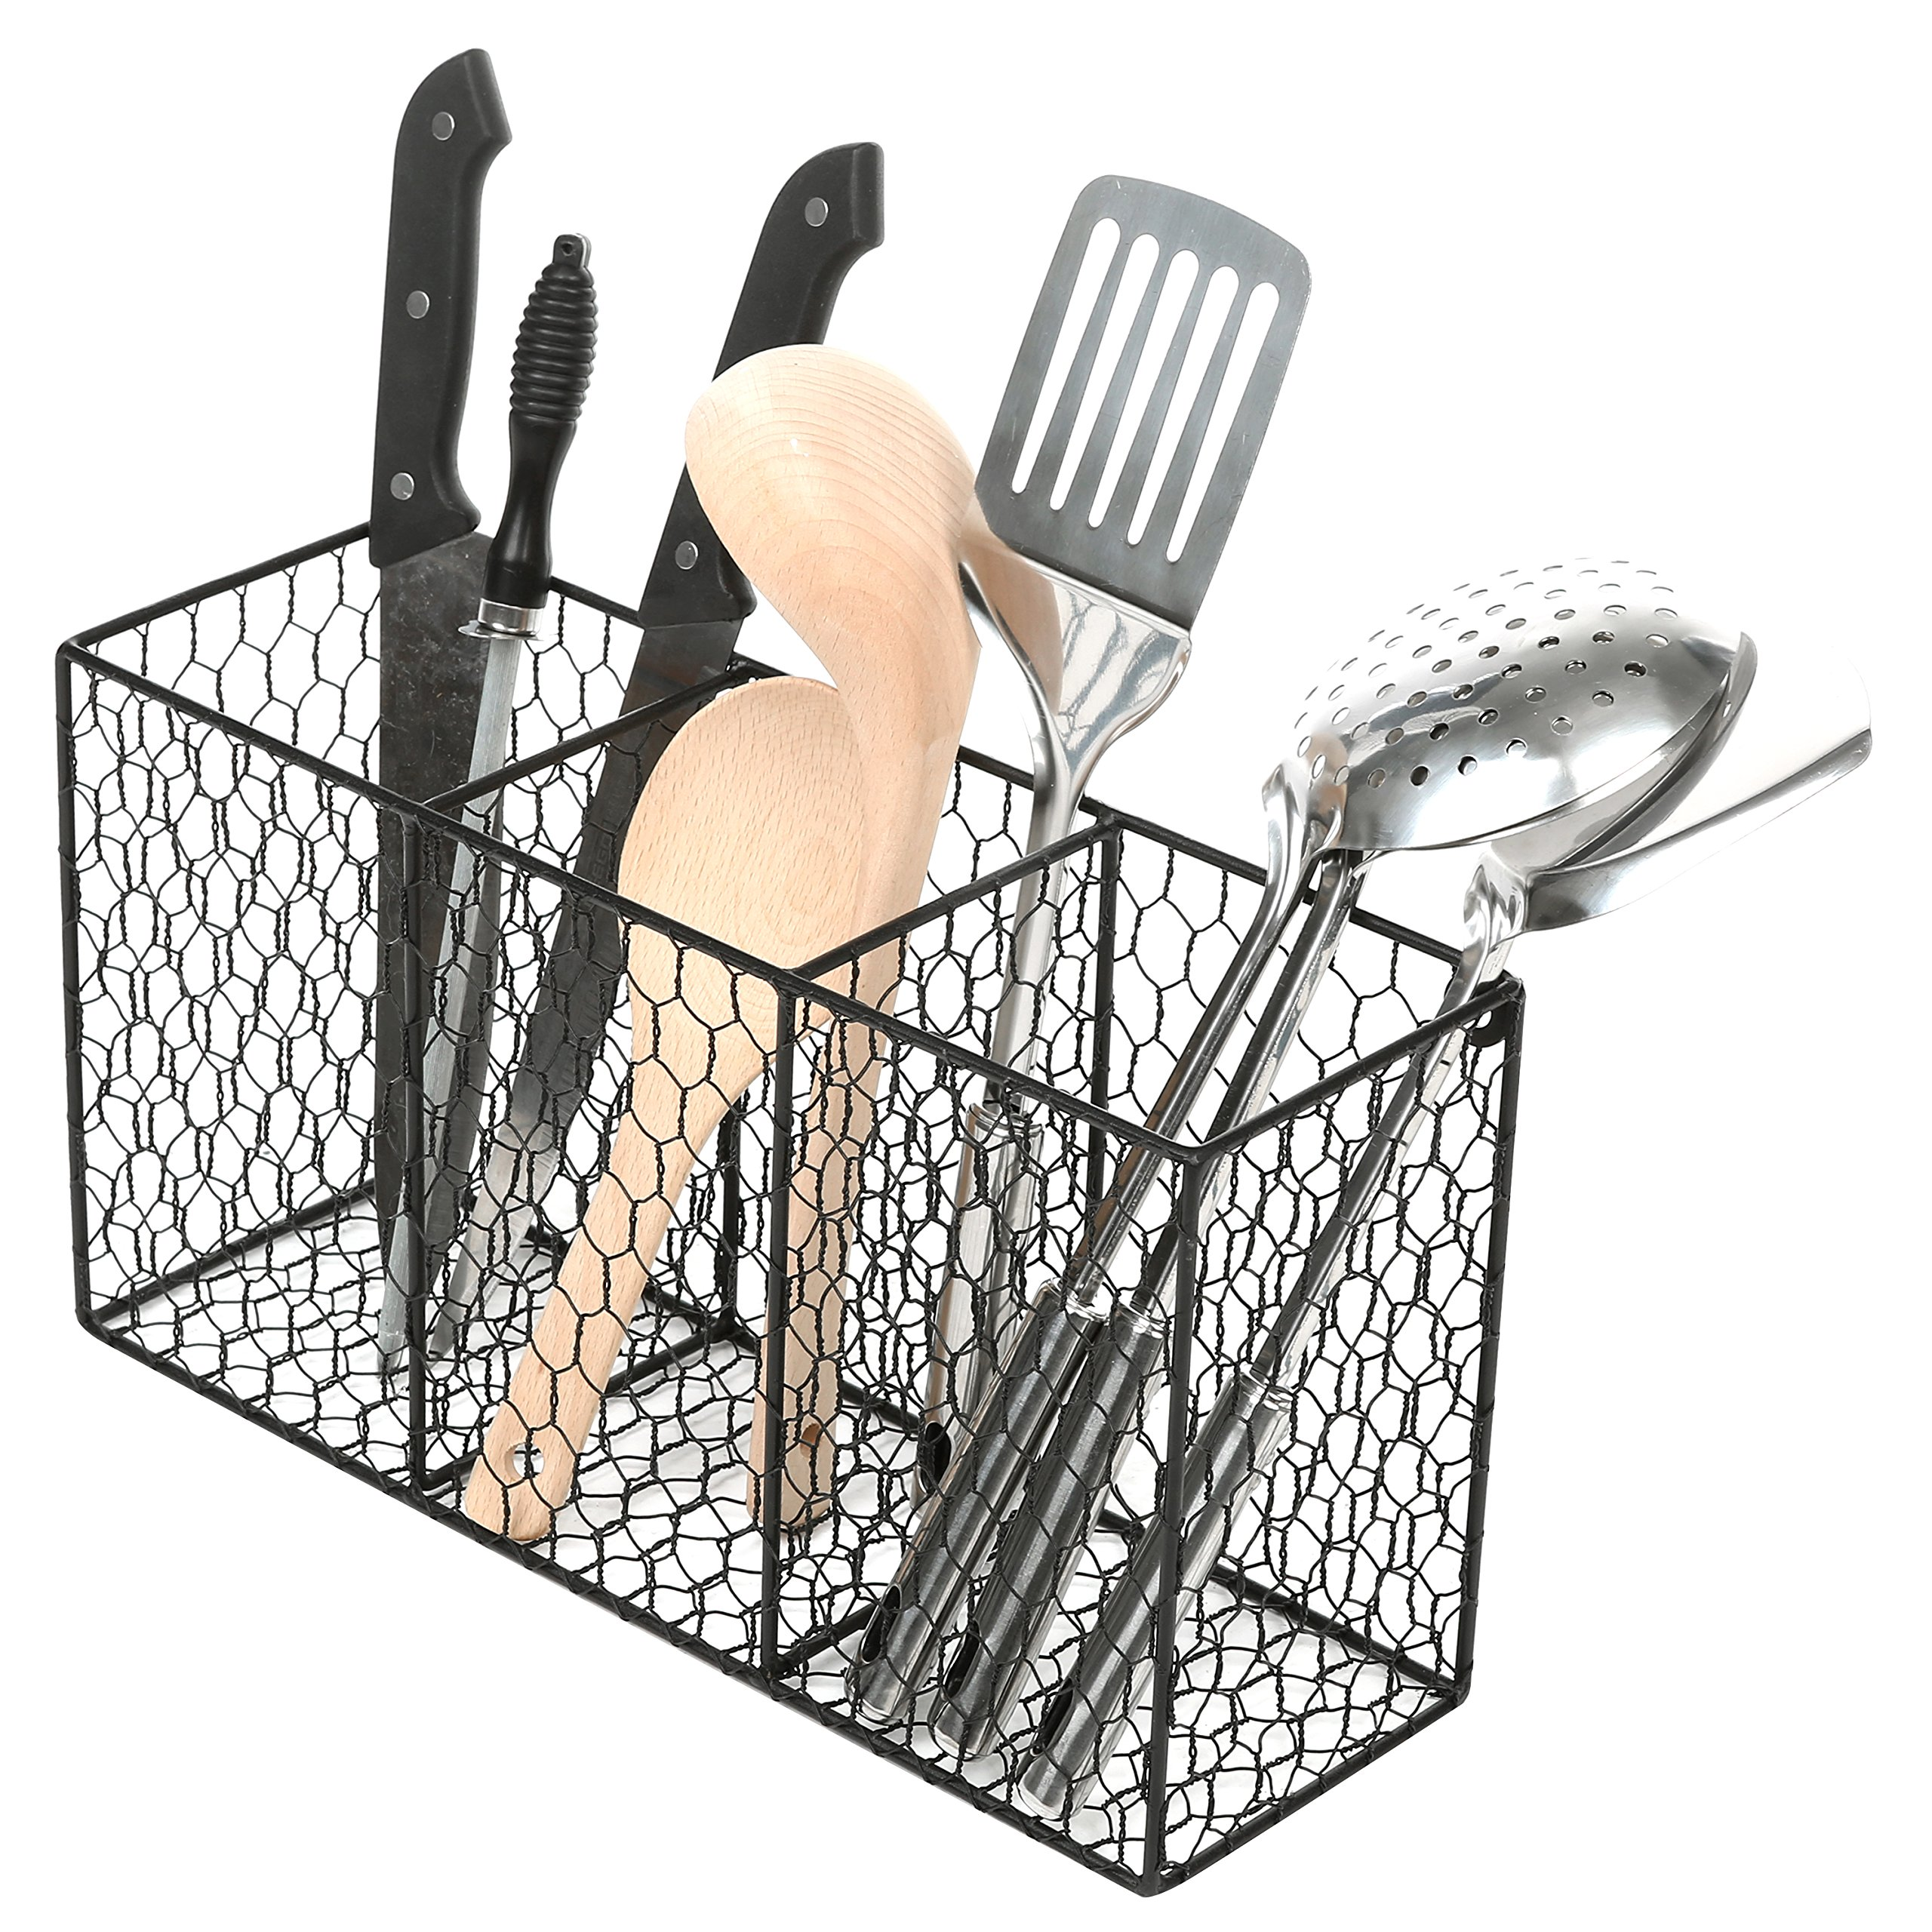 3 Compartment Rustic Chicken Wire Kitchen Utensil Holder Basket ...